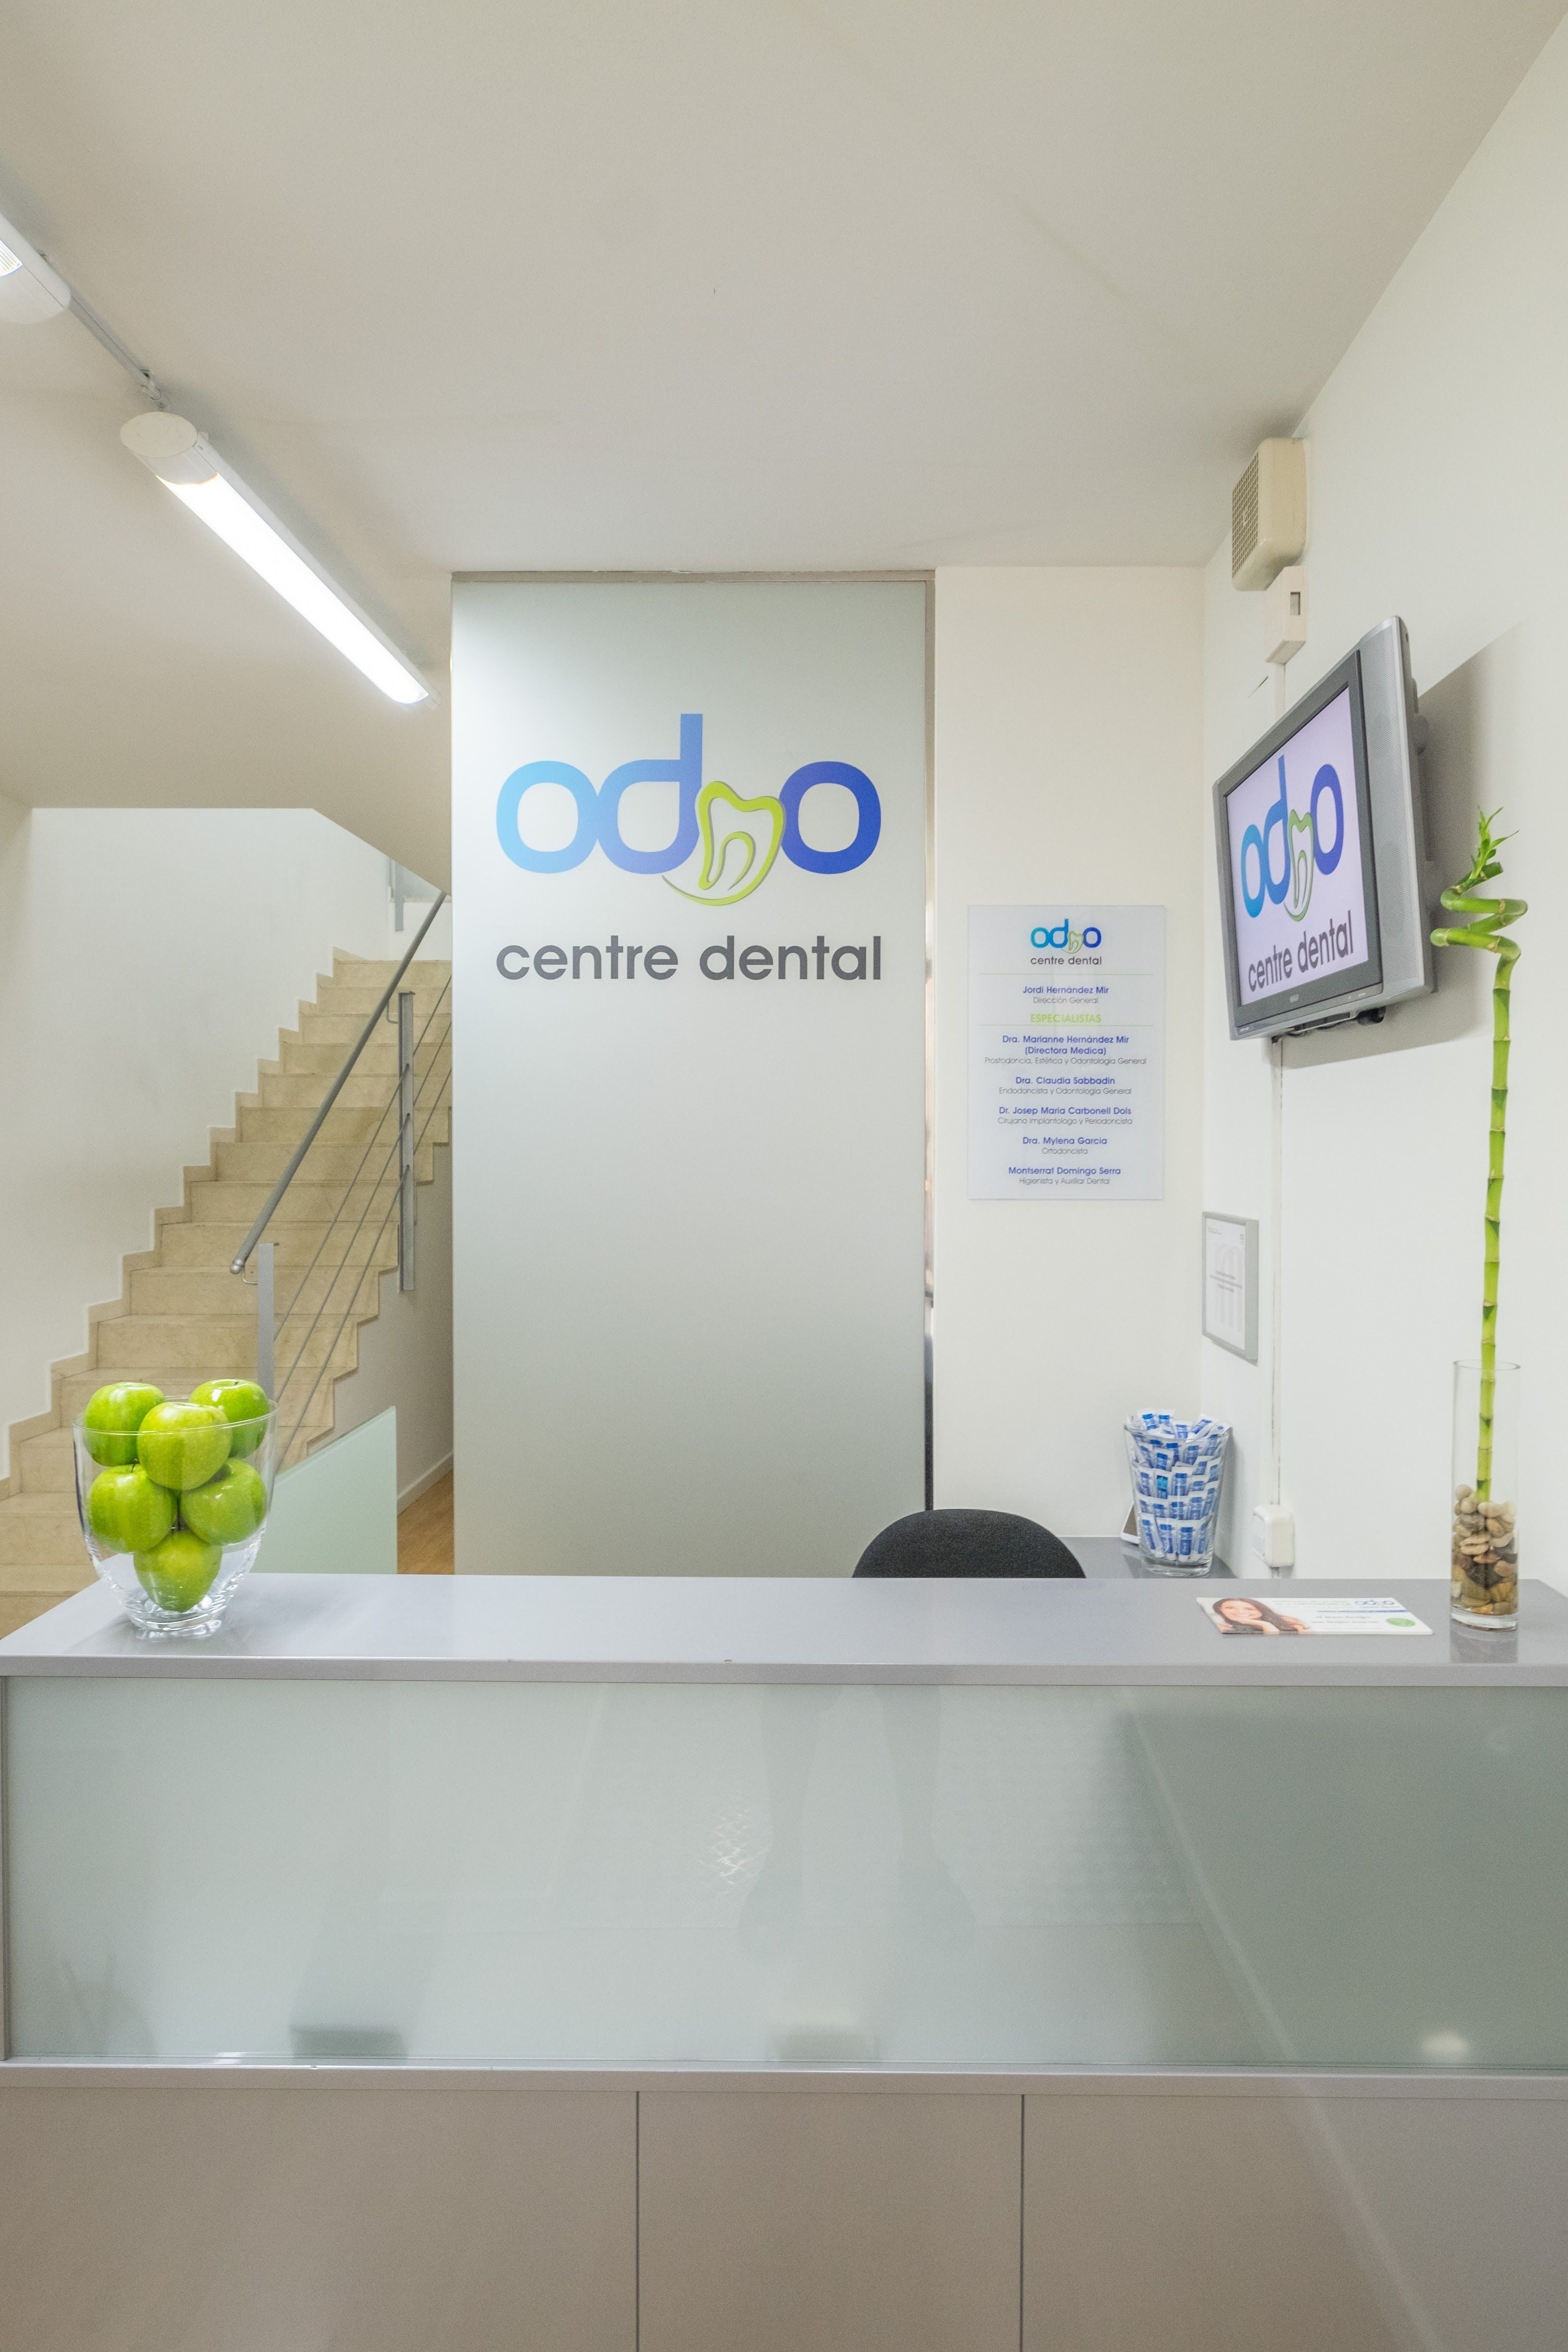 Foto 1 de Clínica dental en Barcelona | Centre Dental Oddo